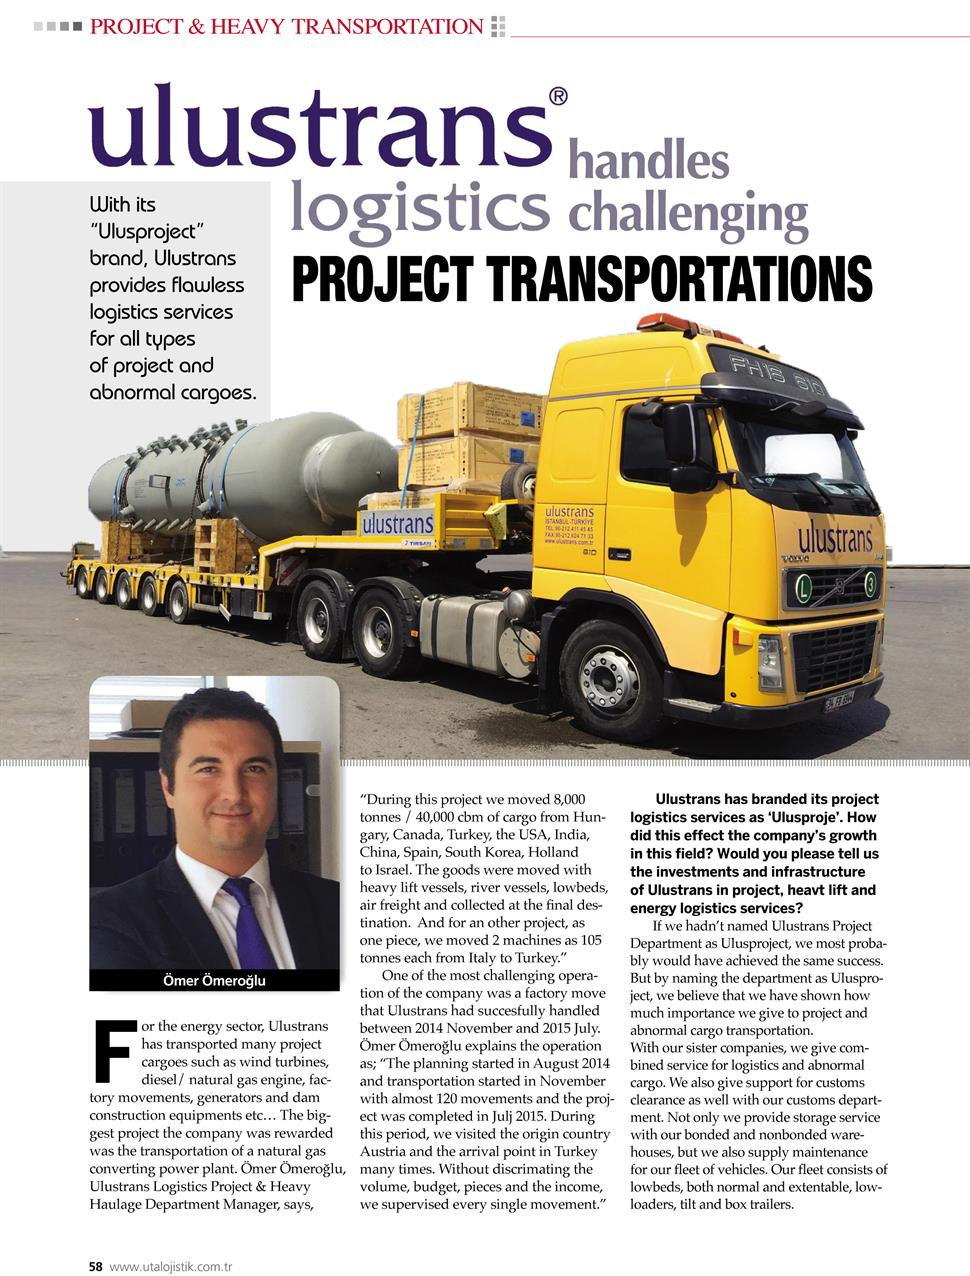 Ulustrans Handles Challenging Project Transportations